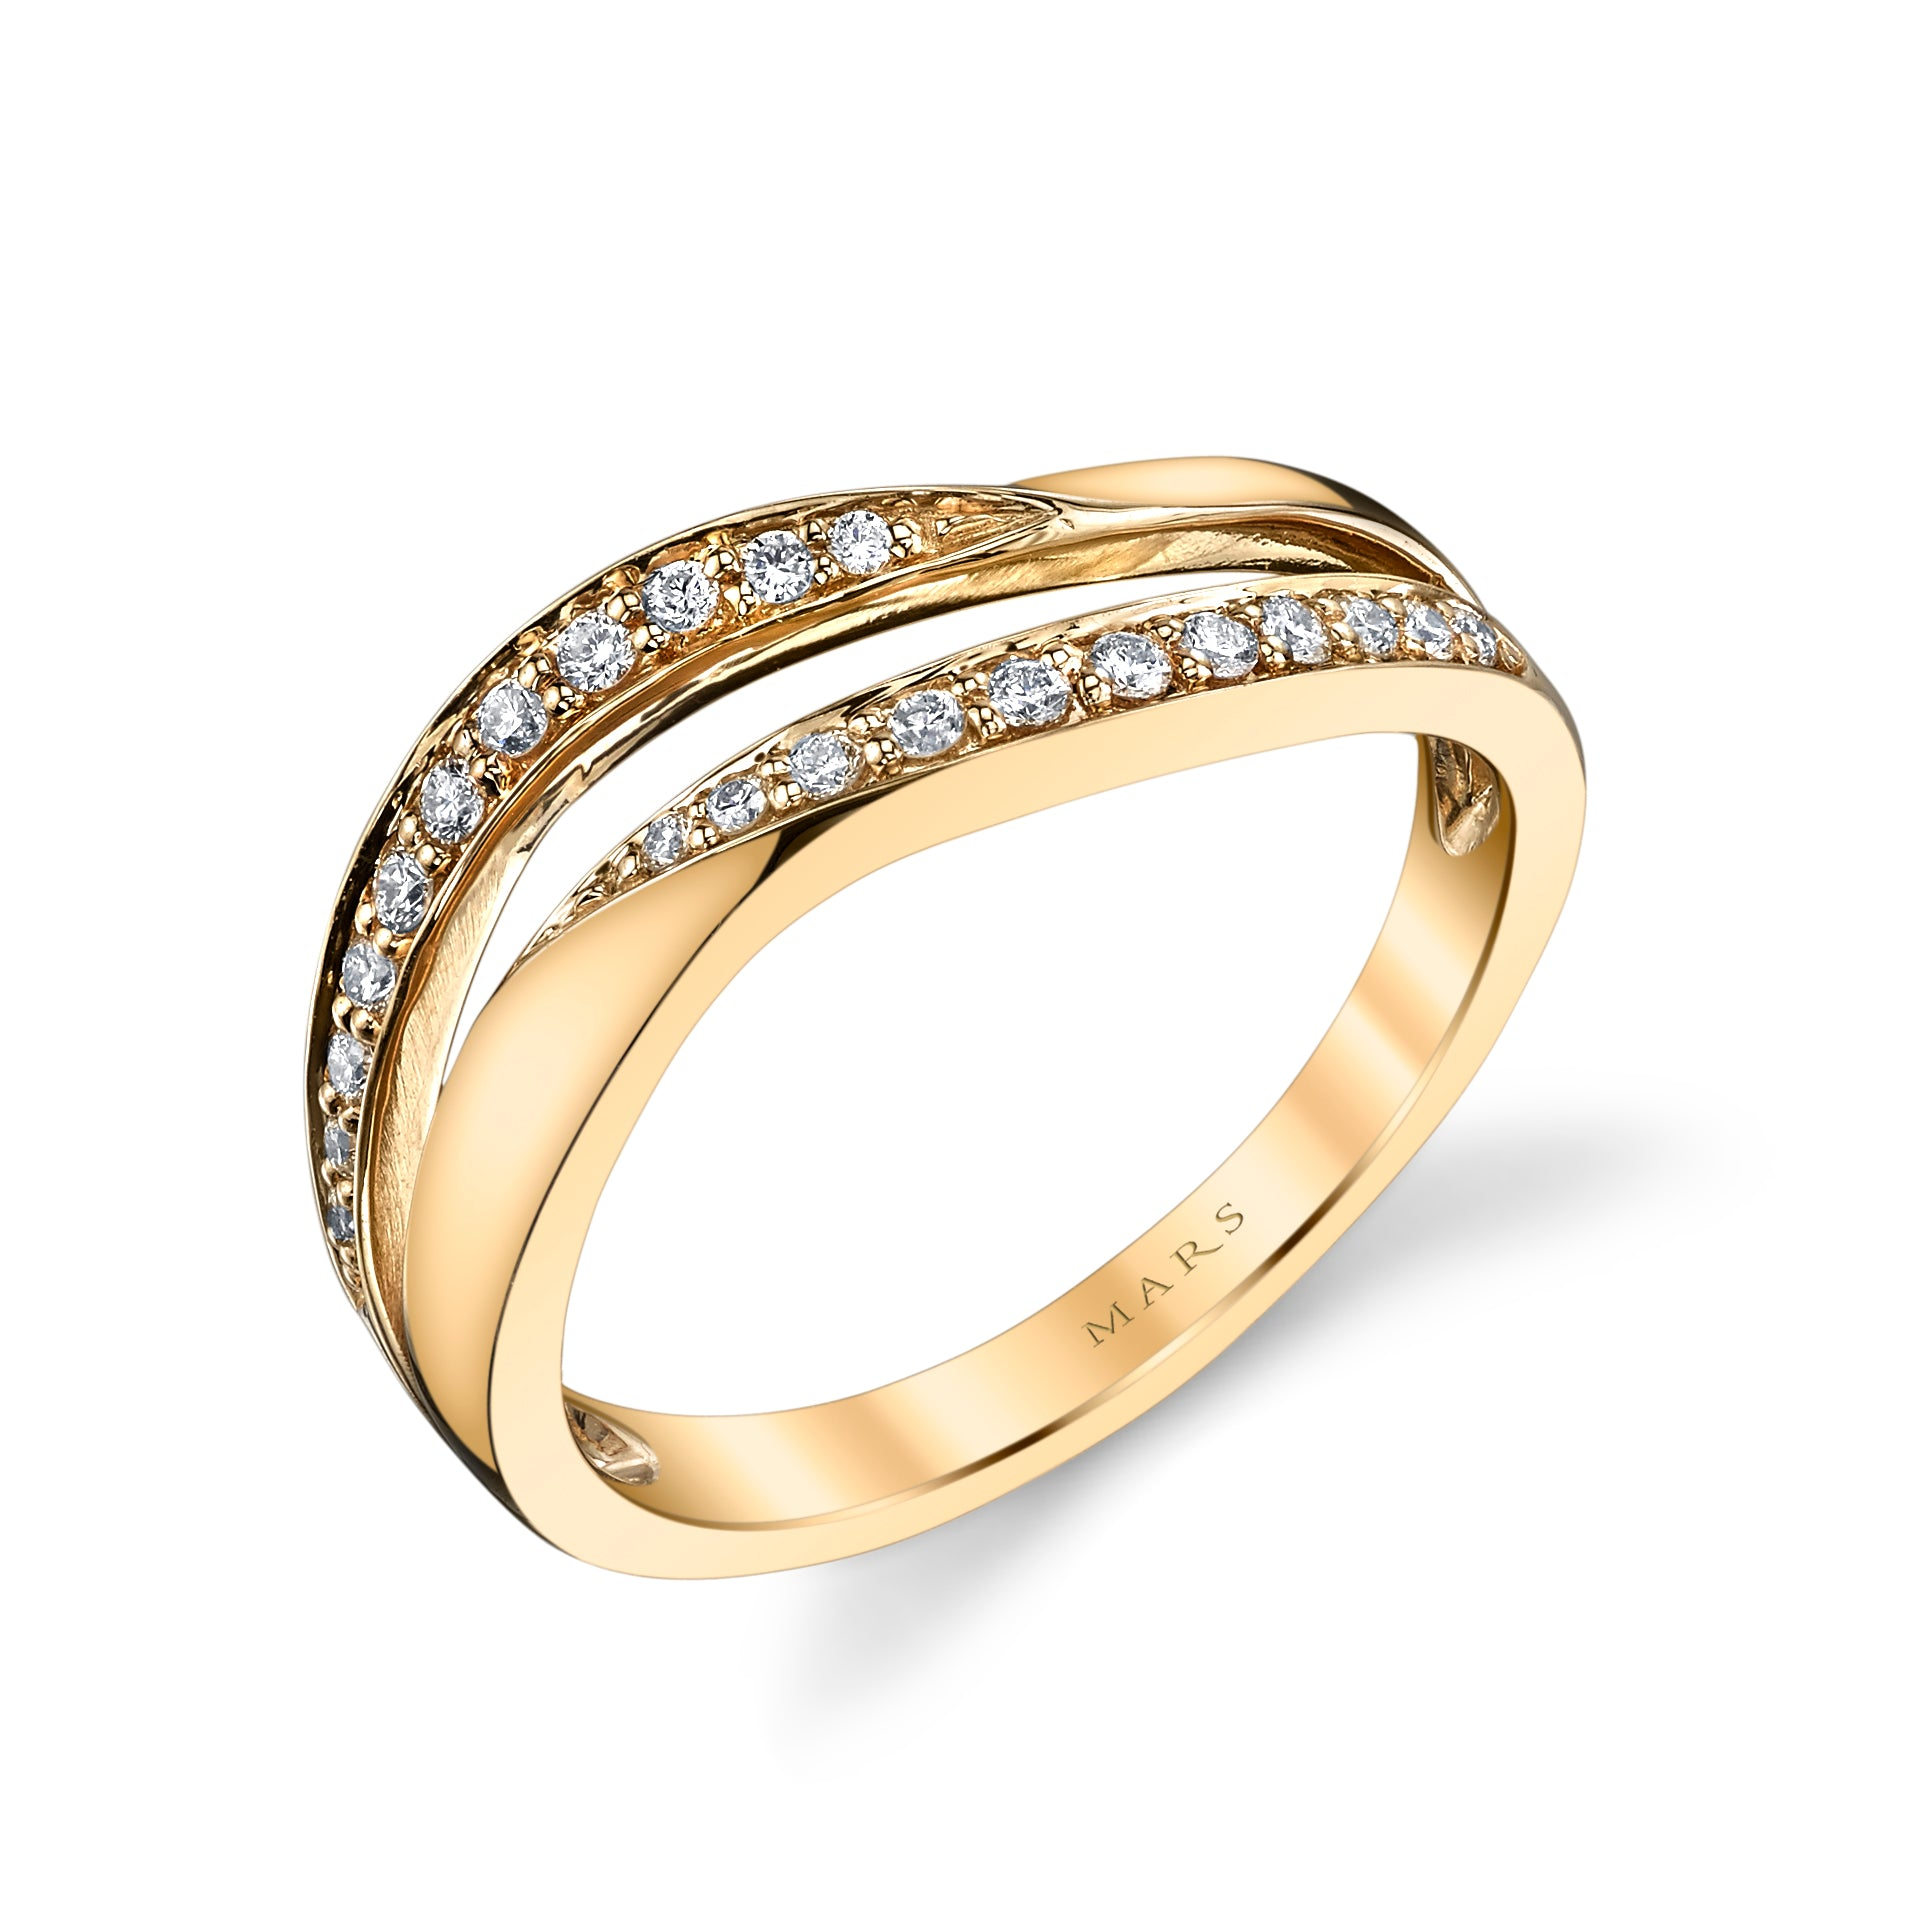 Mars Jewelry 14K Yellow Gold Fashion Ring w/ Contrasting Diamonds 26576